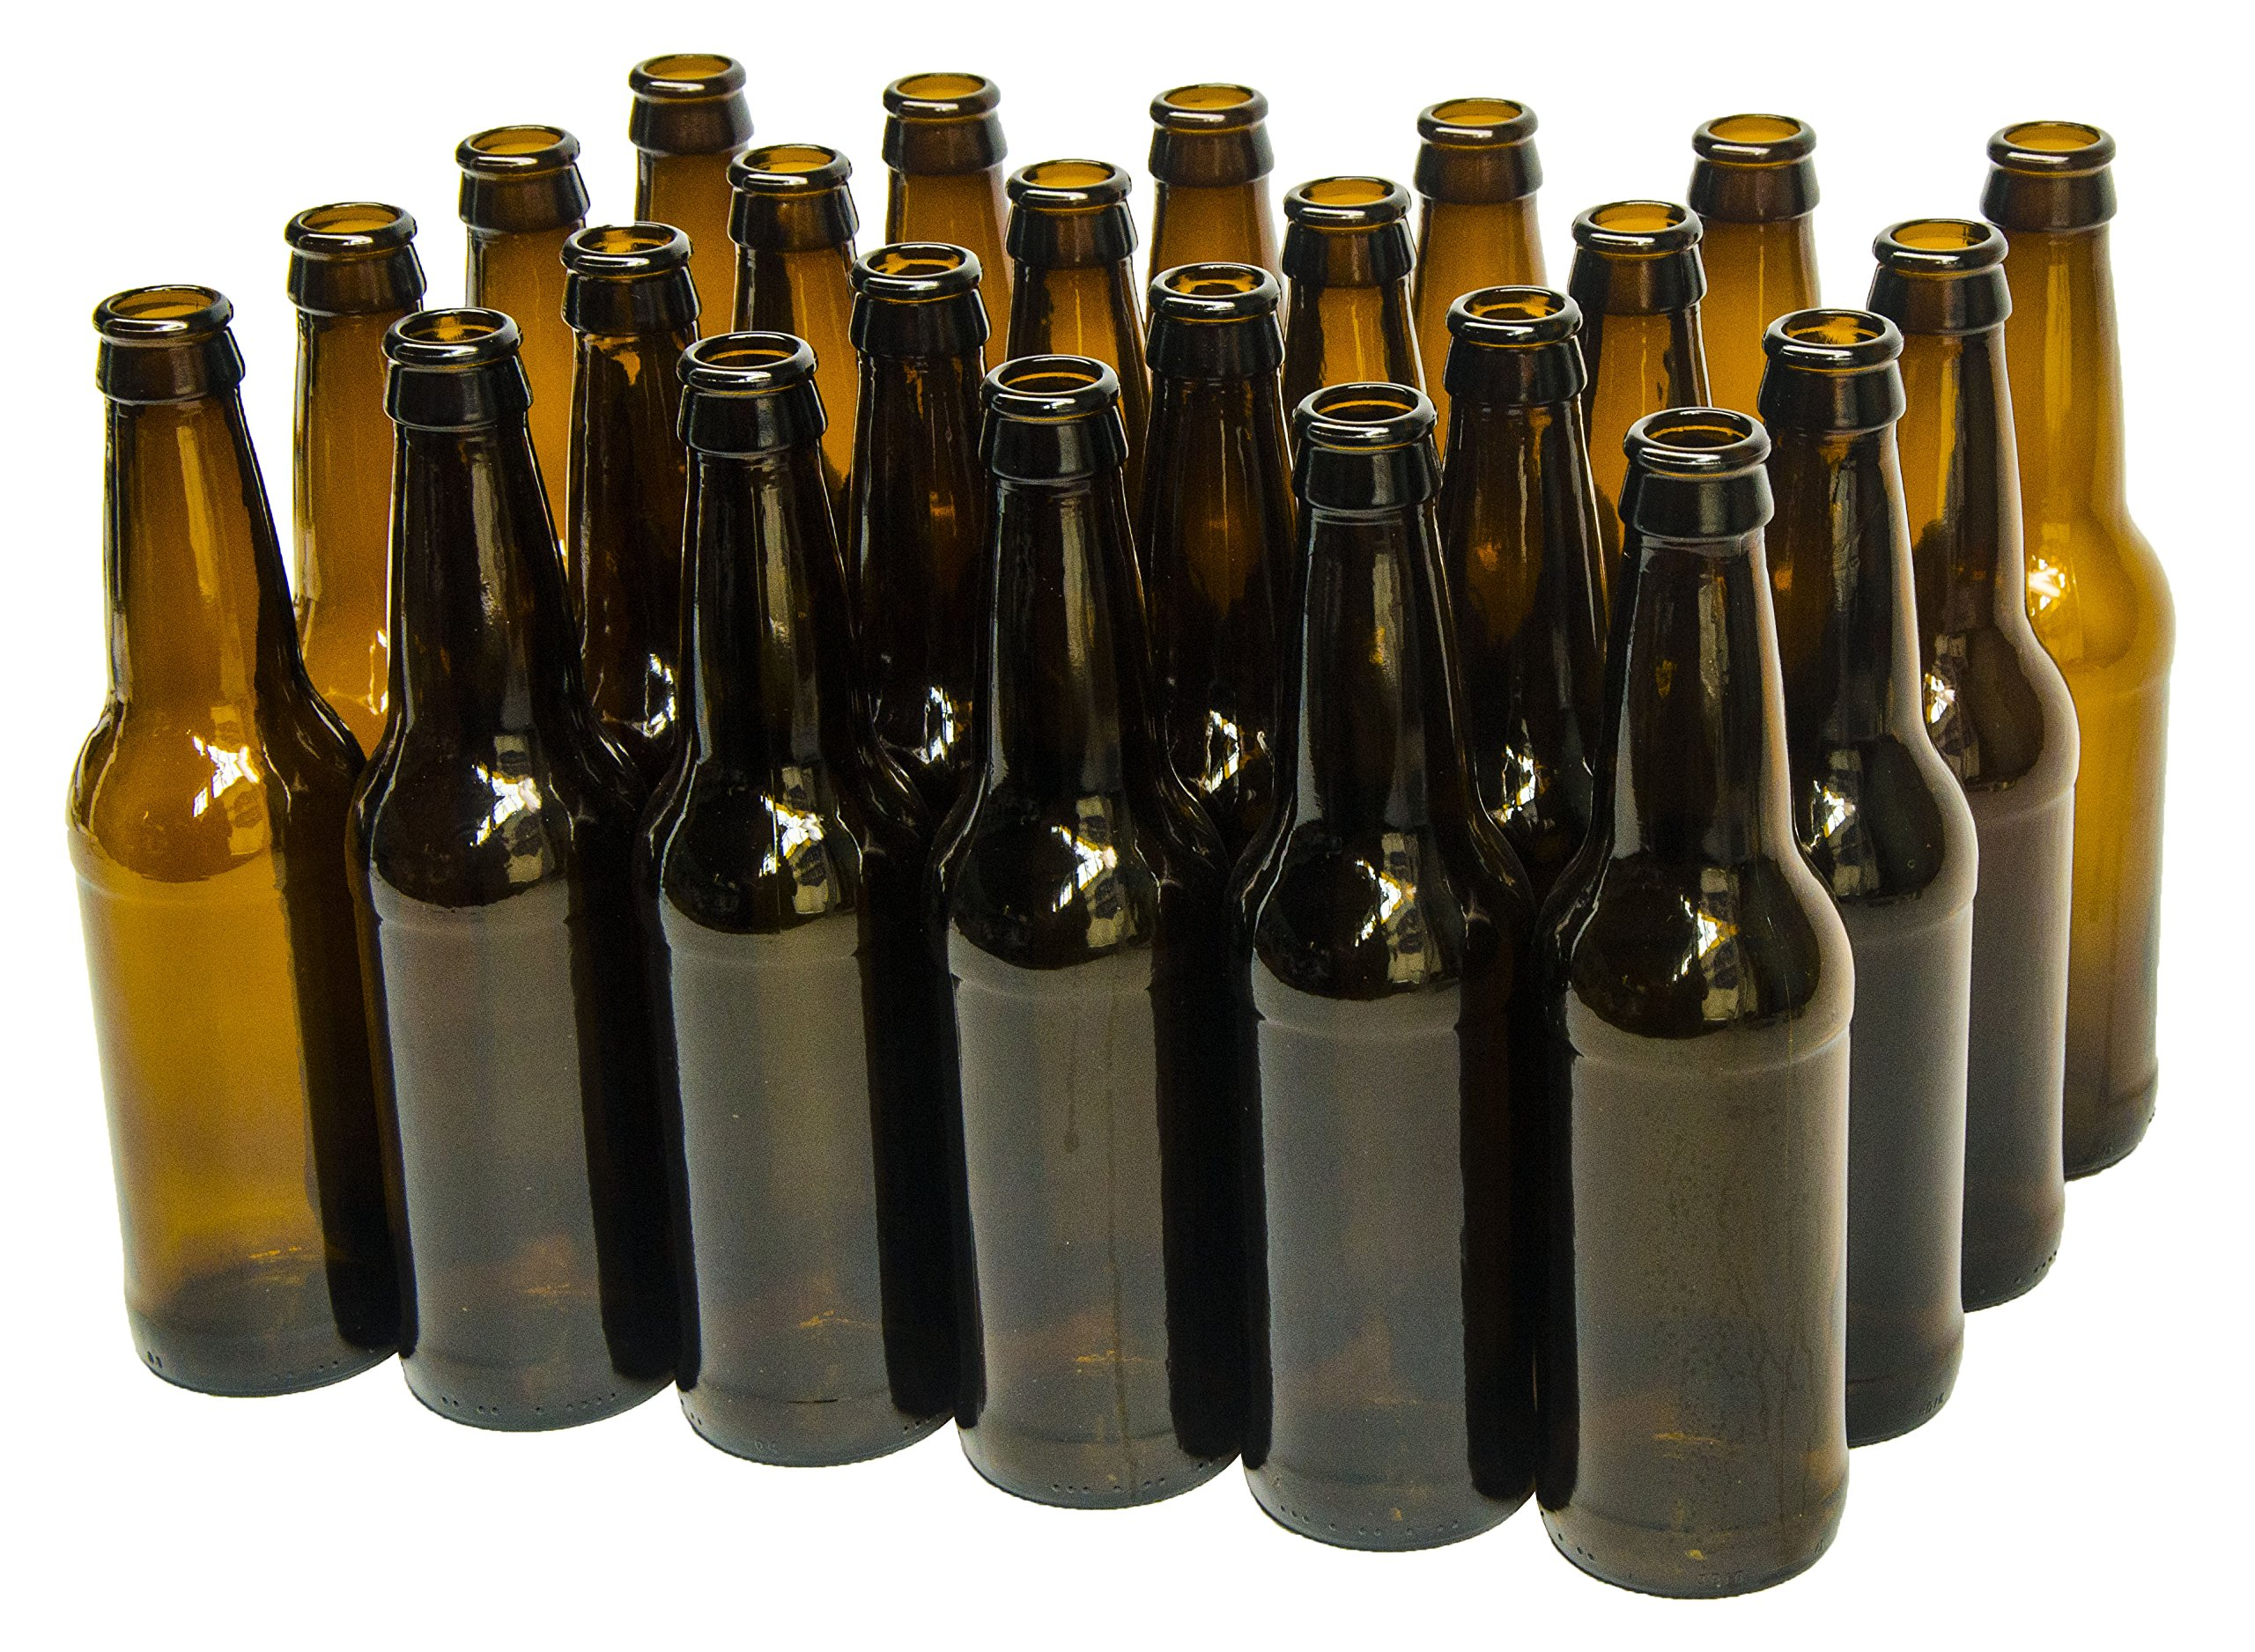 North Mountain Supply 12 Ounce Long-Neck Amber Beer Bottles - Case of 24 by North Mountain Supply